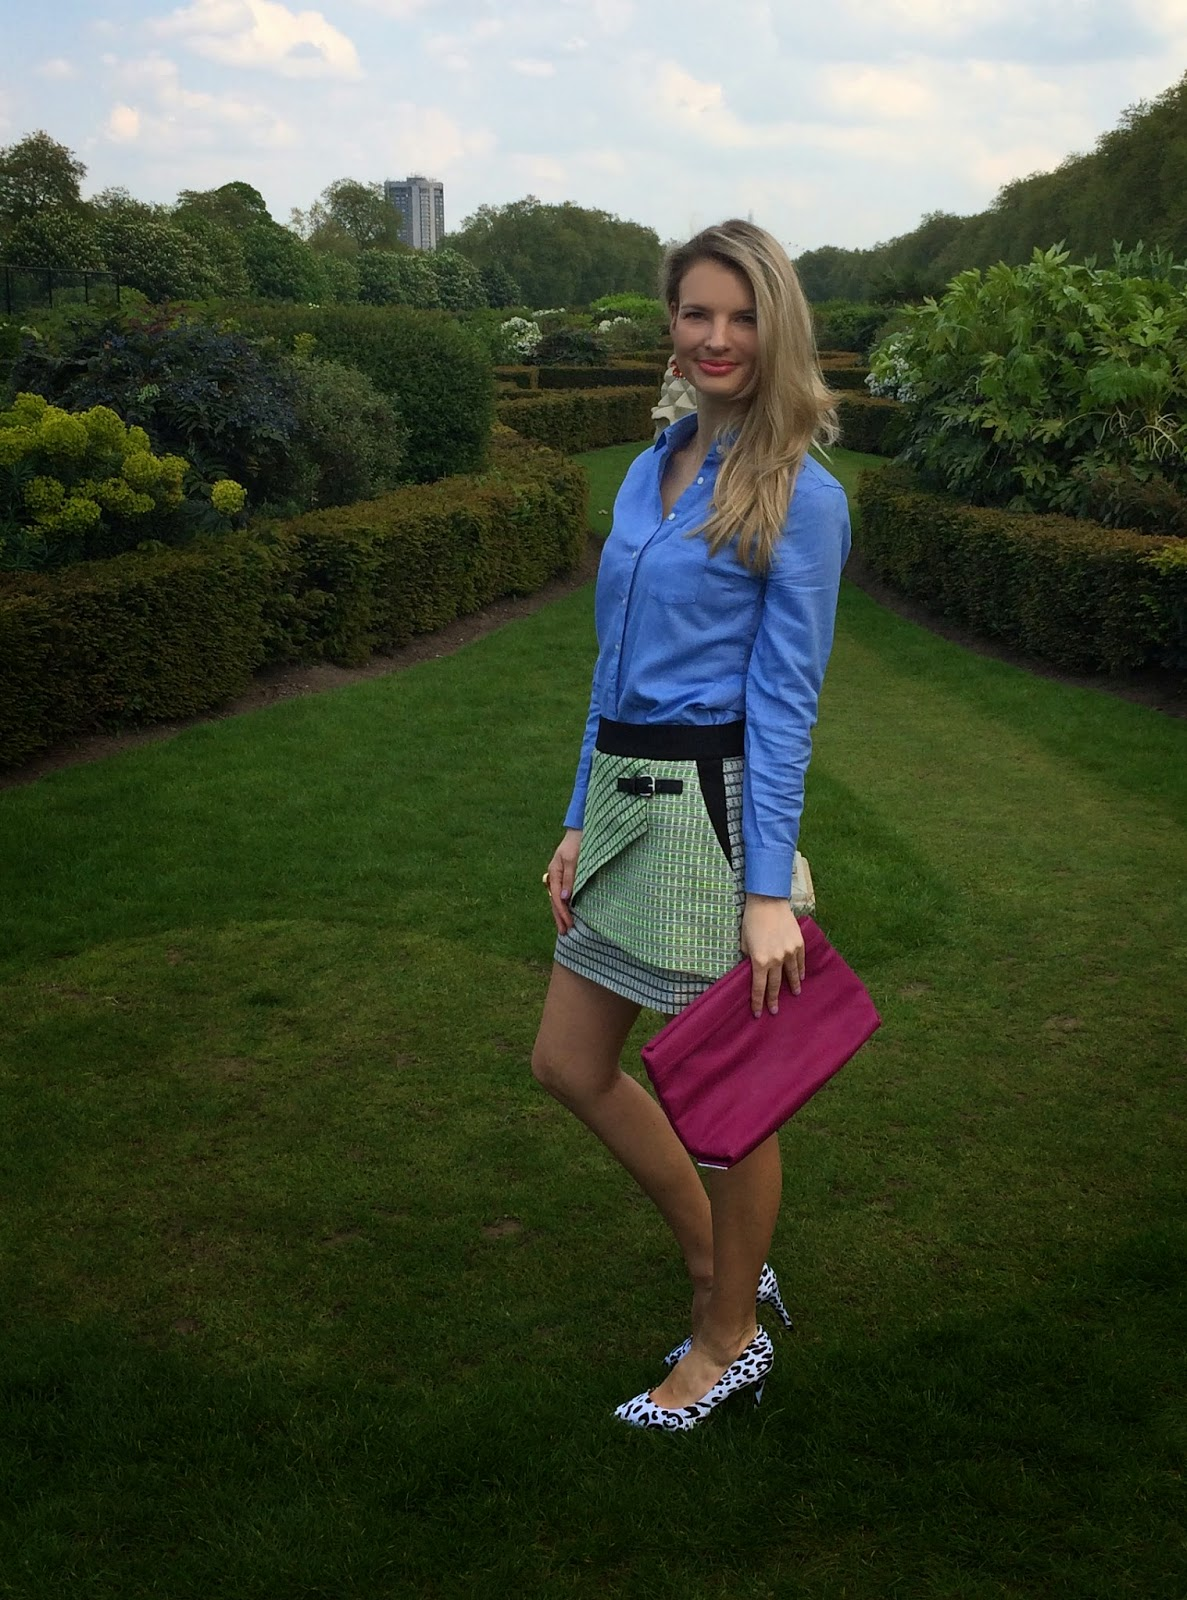 pink clutch, zara clutch, zara pink clutch, asos heels, asos lookbook, wrap skirt, karen millen skirt, blue shirt and skirt, shirt and skirt, london, street style